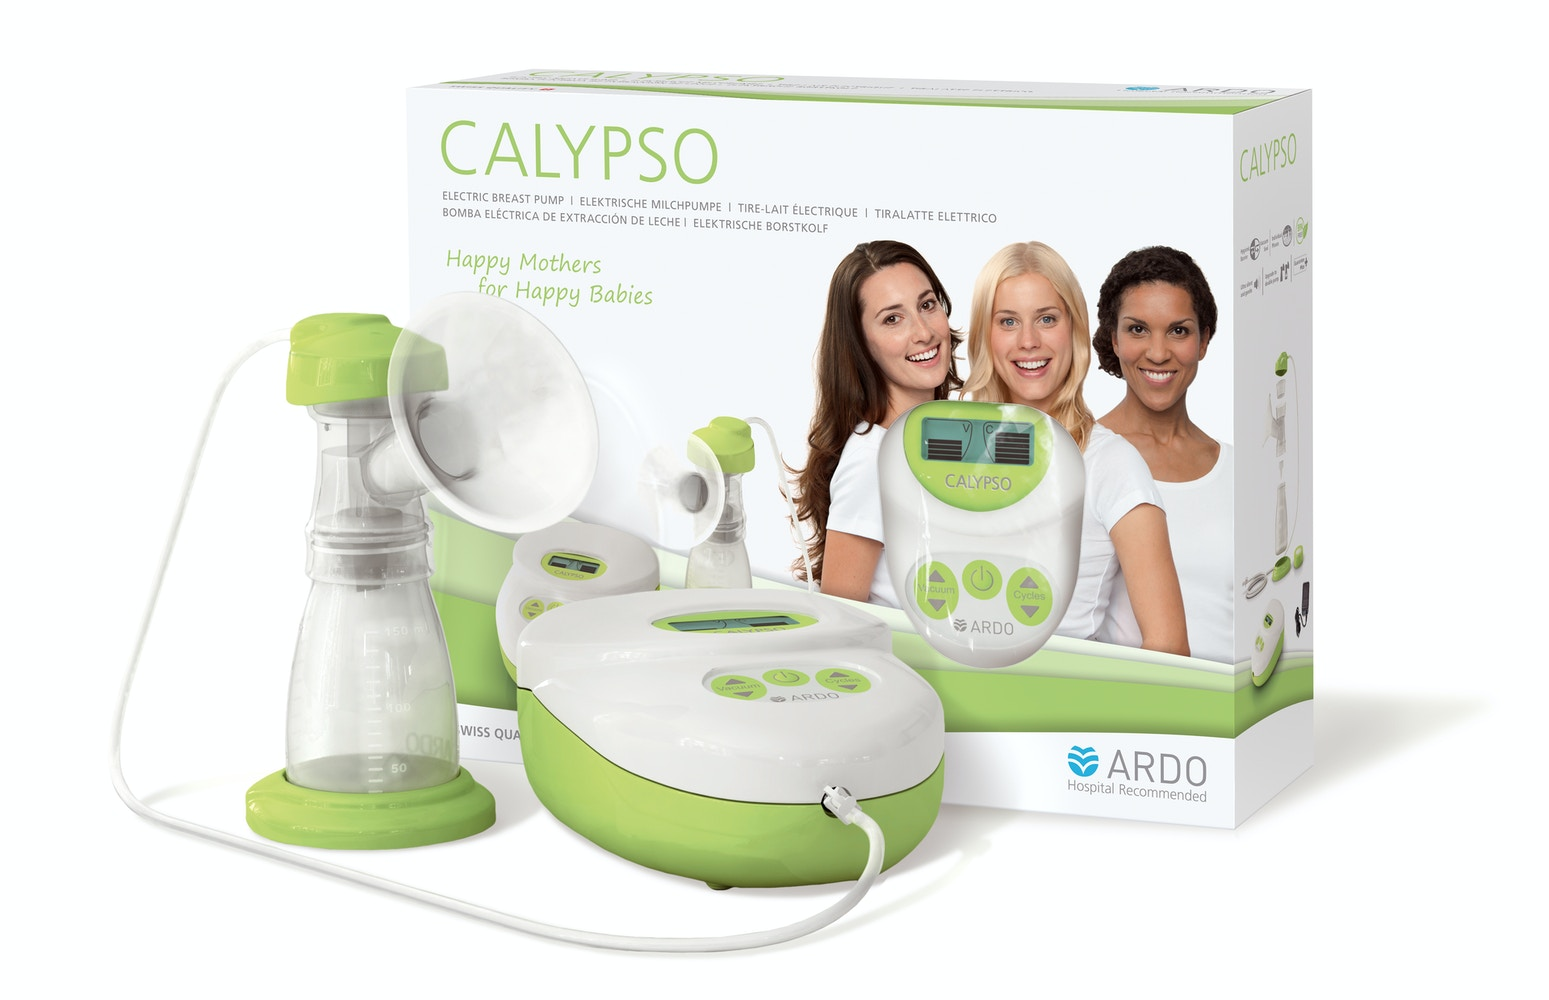 Ardo Calypso Breast Pump Review